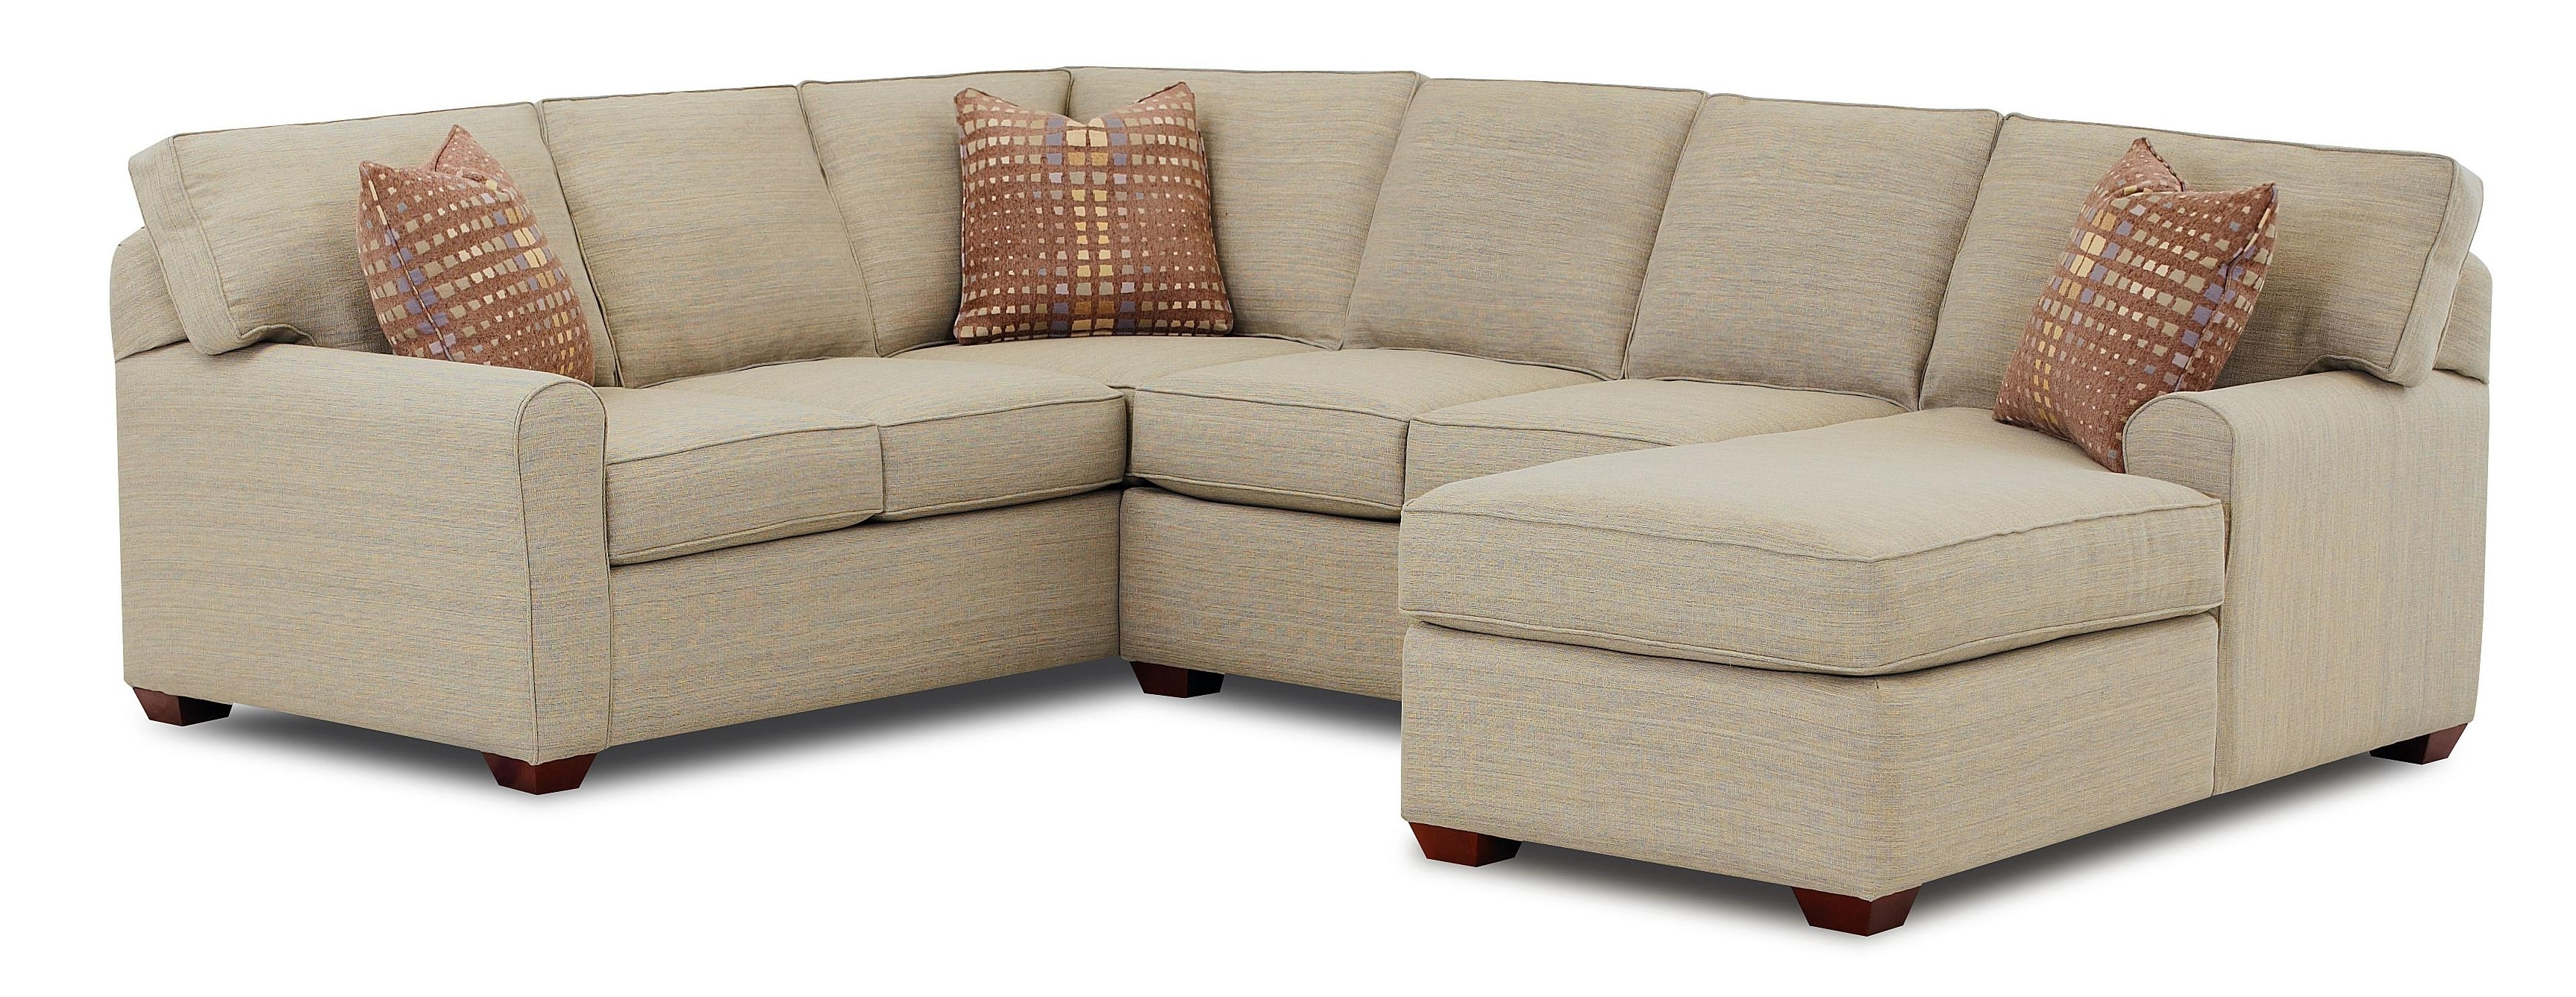 Popular Left Chaise Sectionals Pertaining To Sectional Sofa With Left Facing Chaise Loungeklaussner (View 10 of 15)